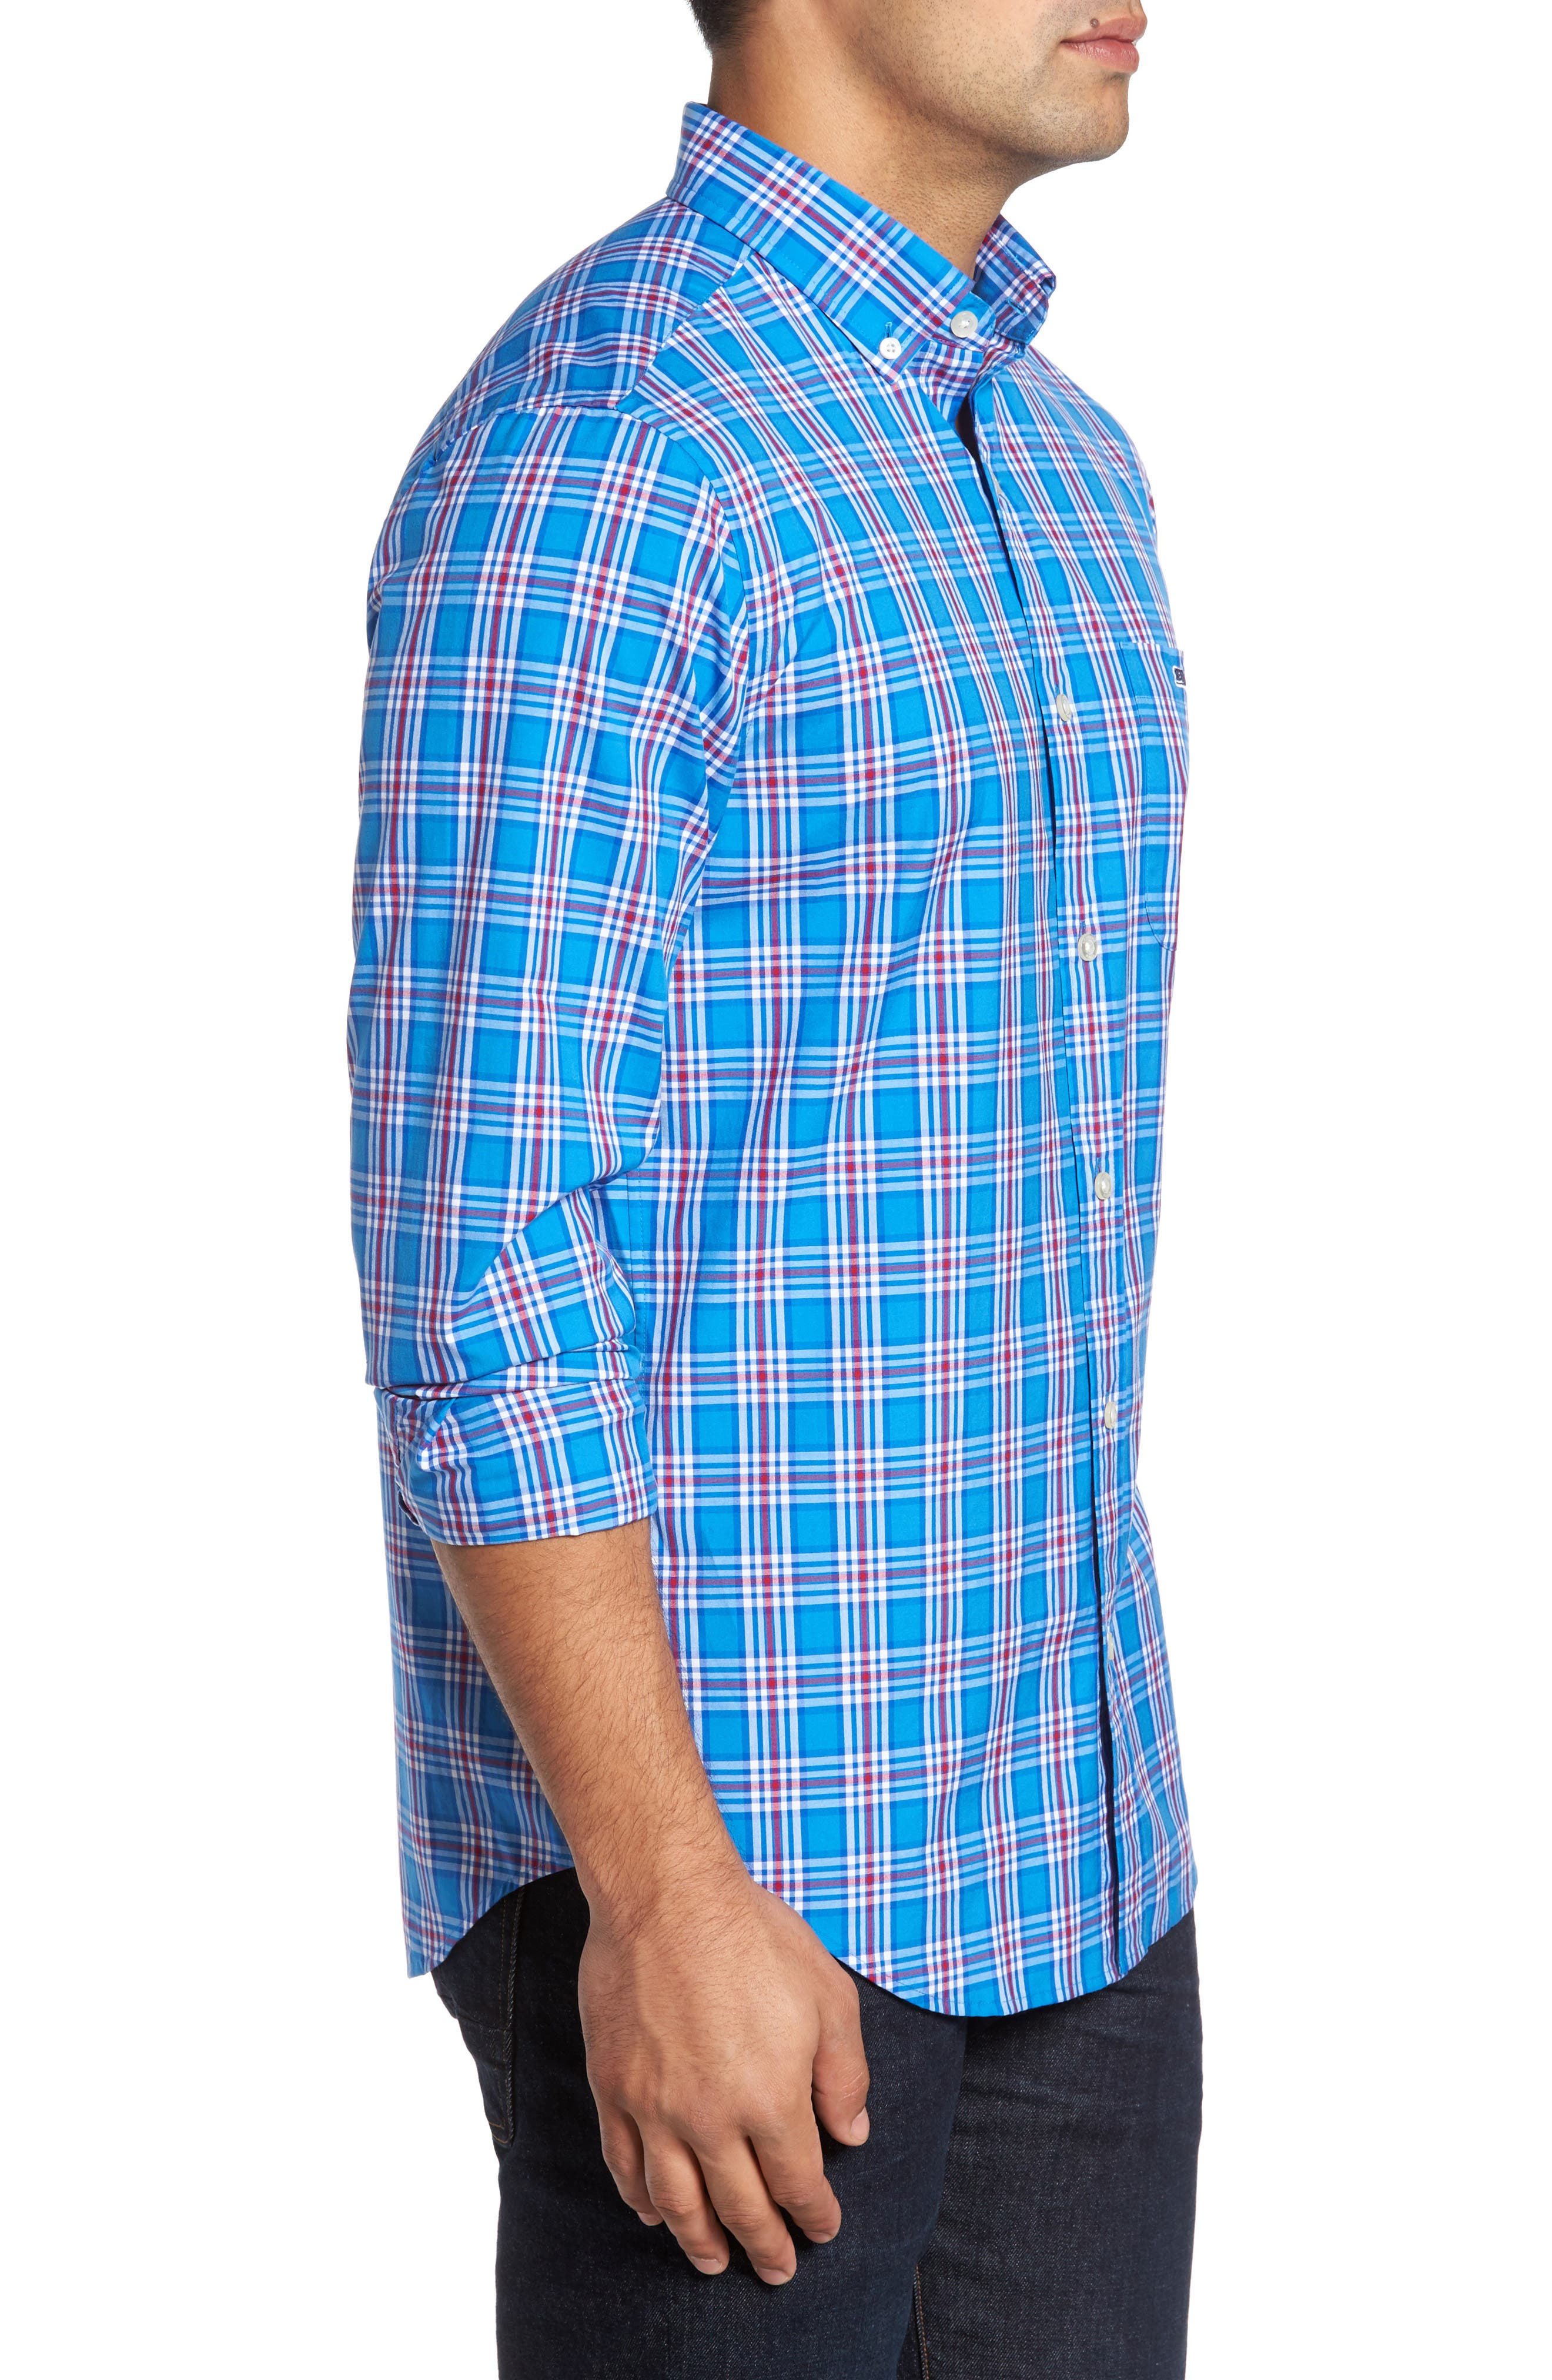 Tucker Chandler Pond Classic Fit Plaid Sport Shirt,                             Alternate thumbnail 3, color,                             Hull Blue